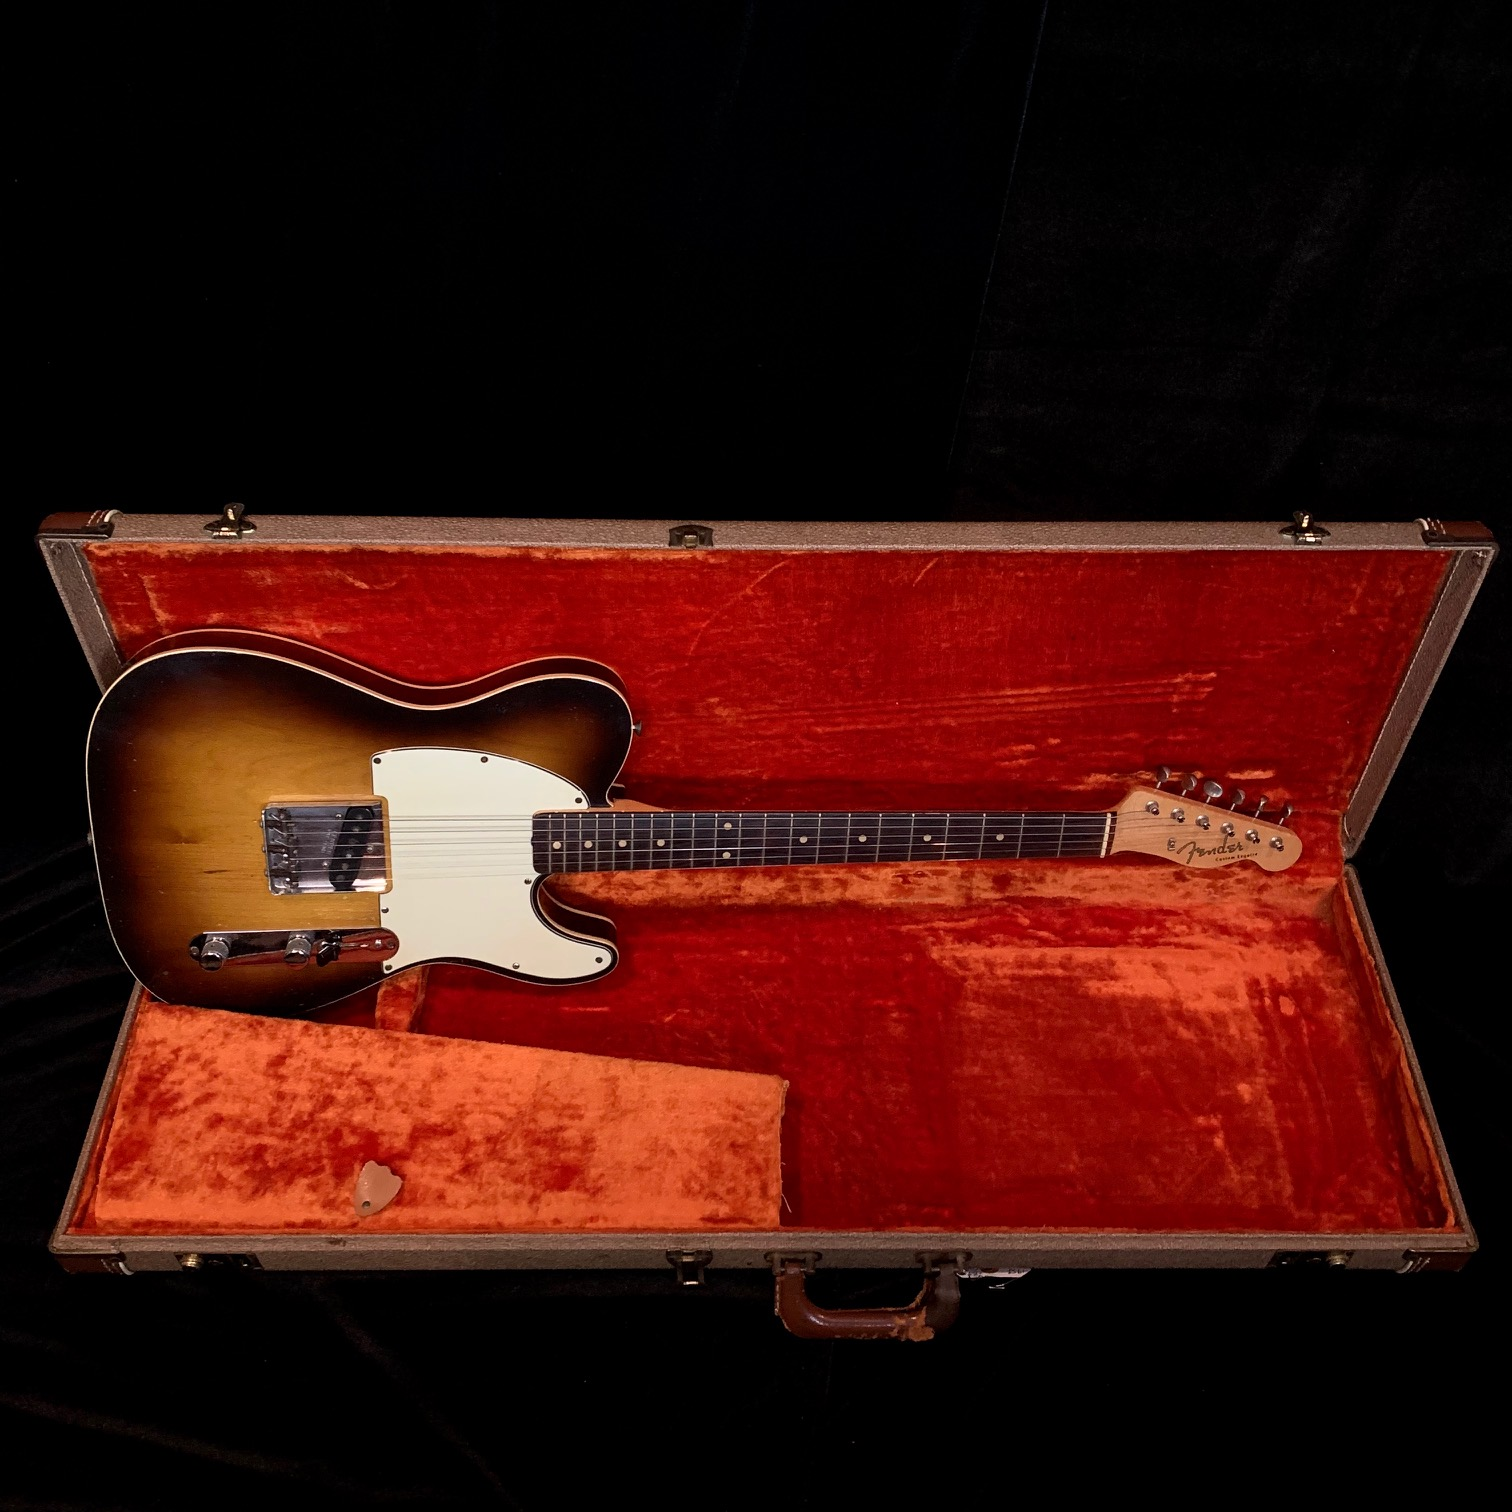 1959 Fender Esquire Custom Double Bound Sunburst SN# 51450